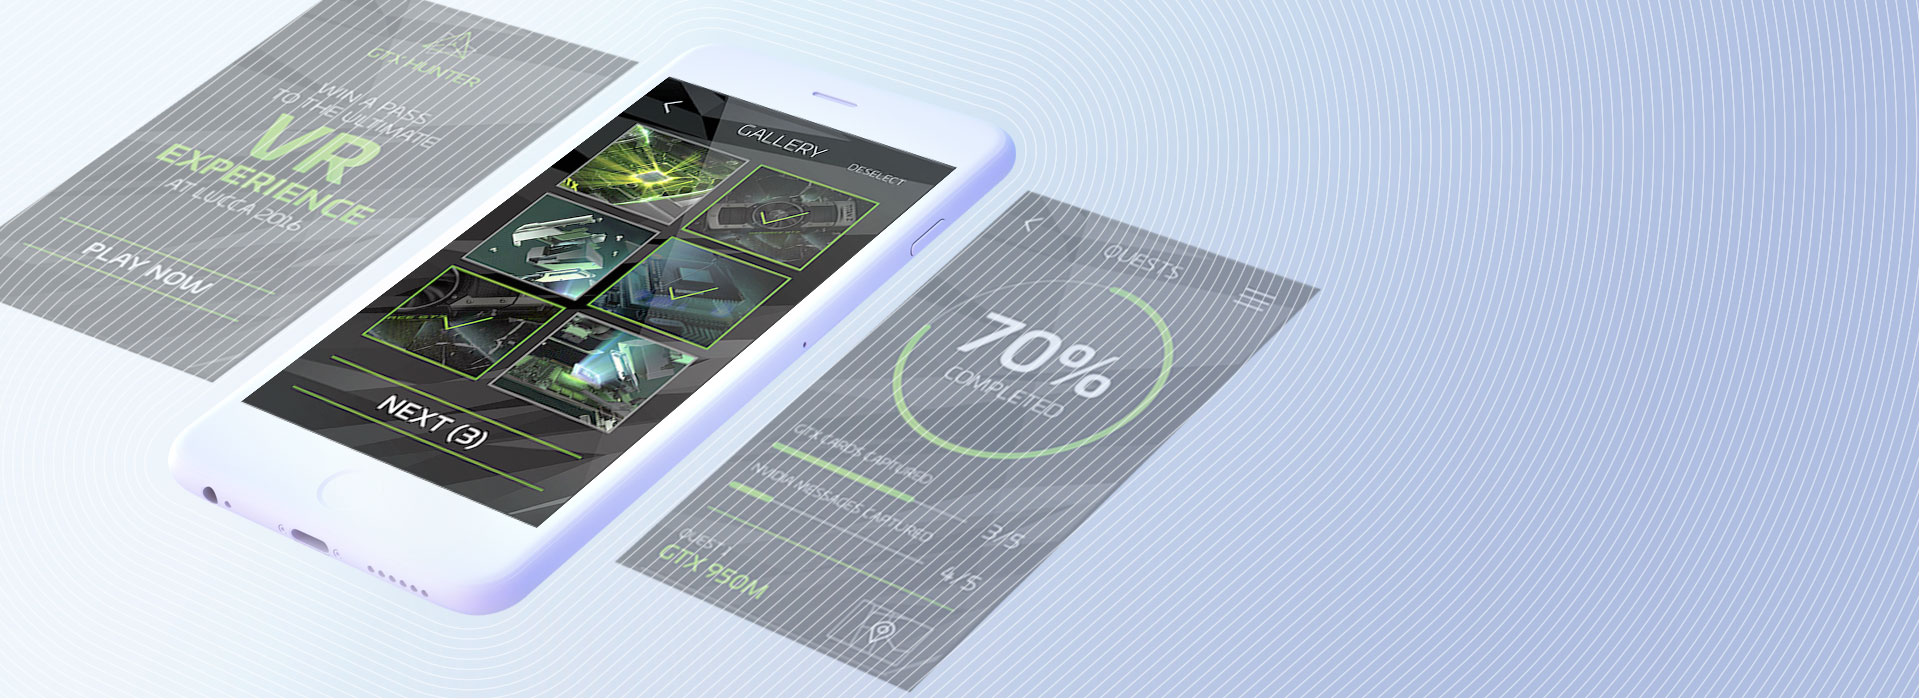 Inmersys-Apps